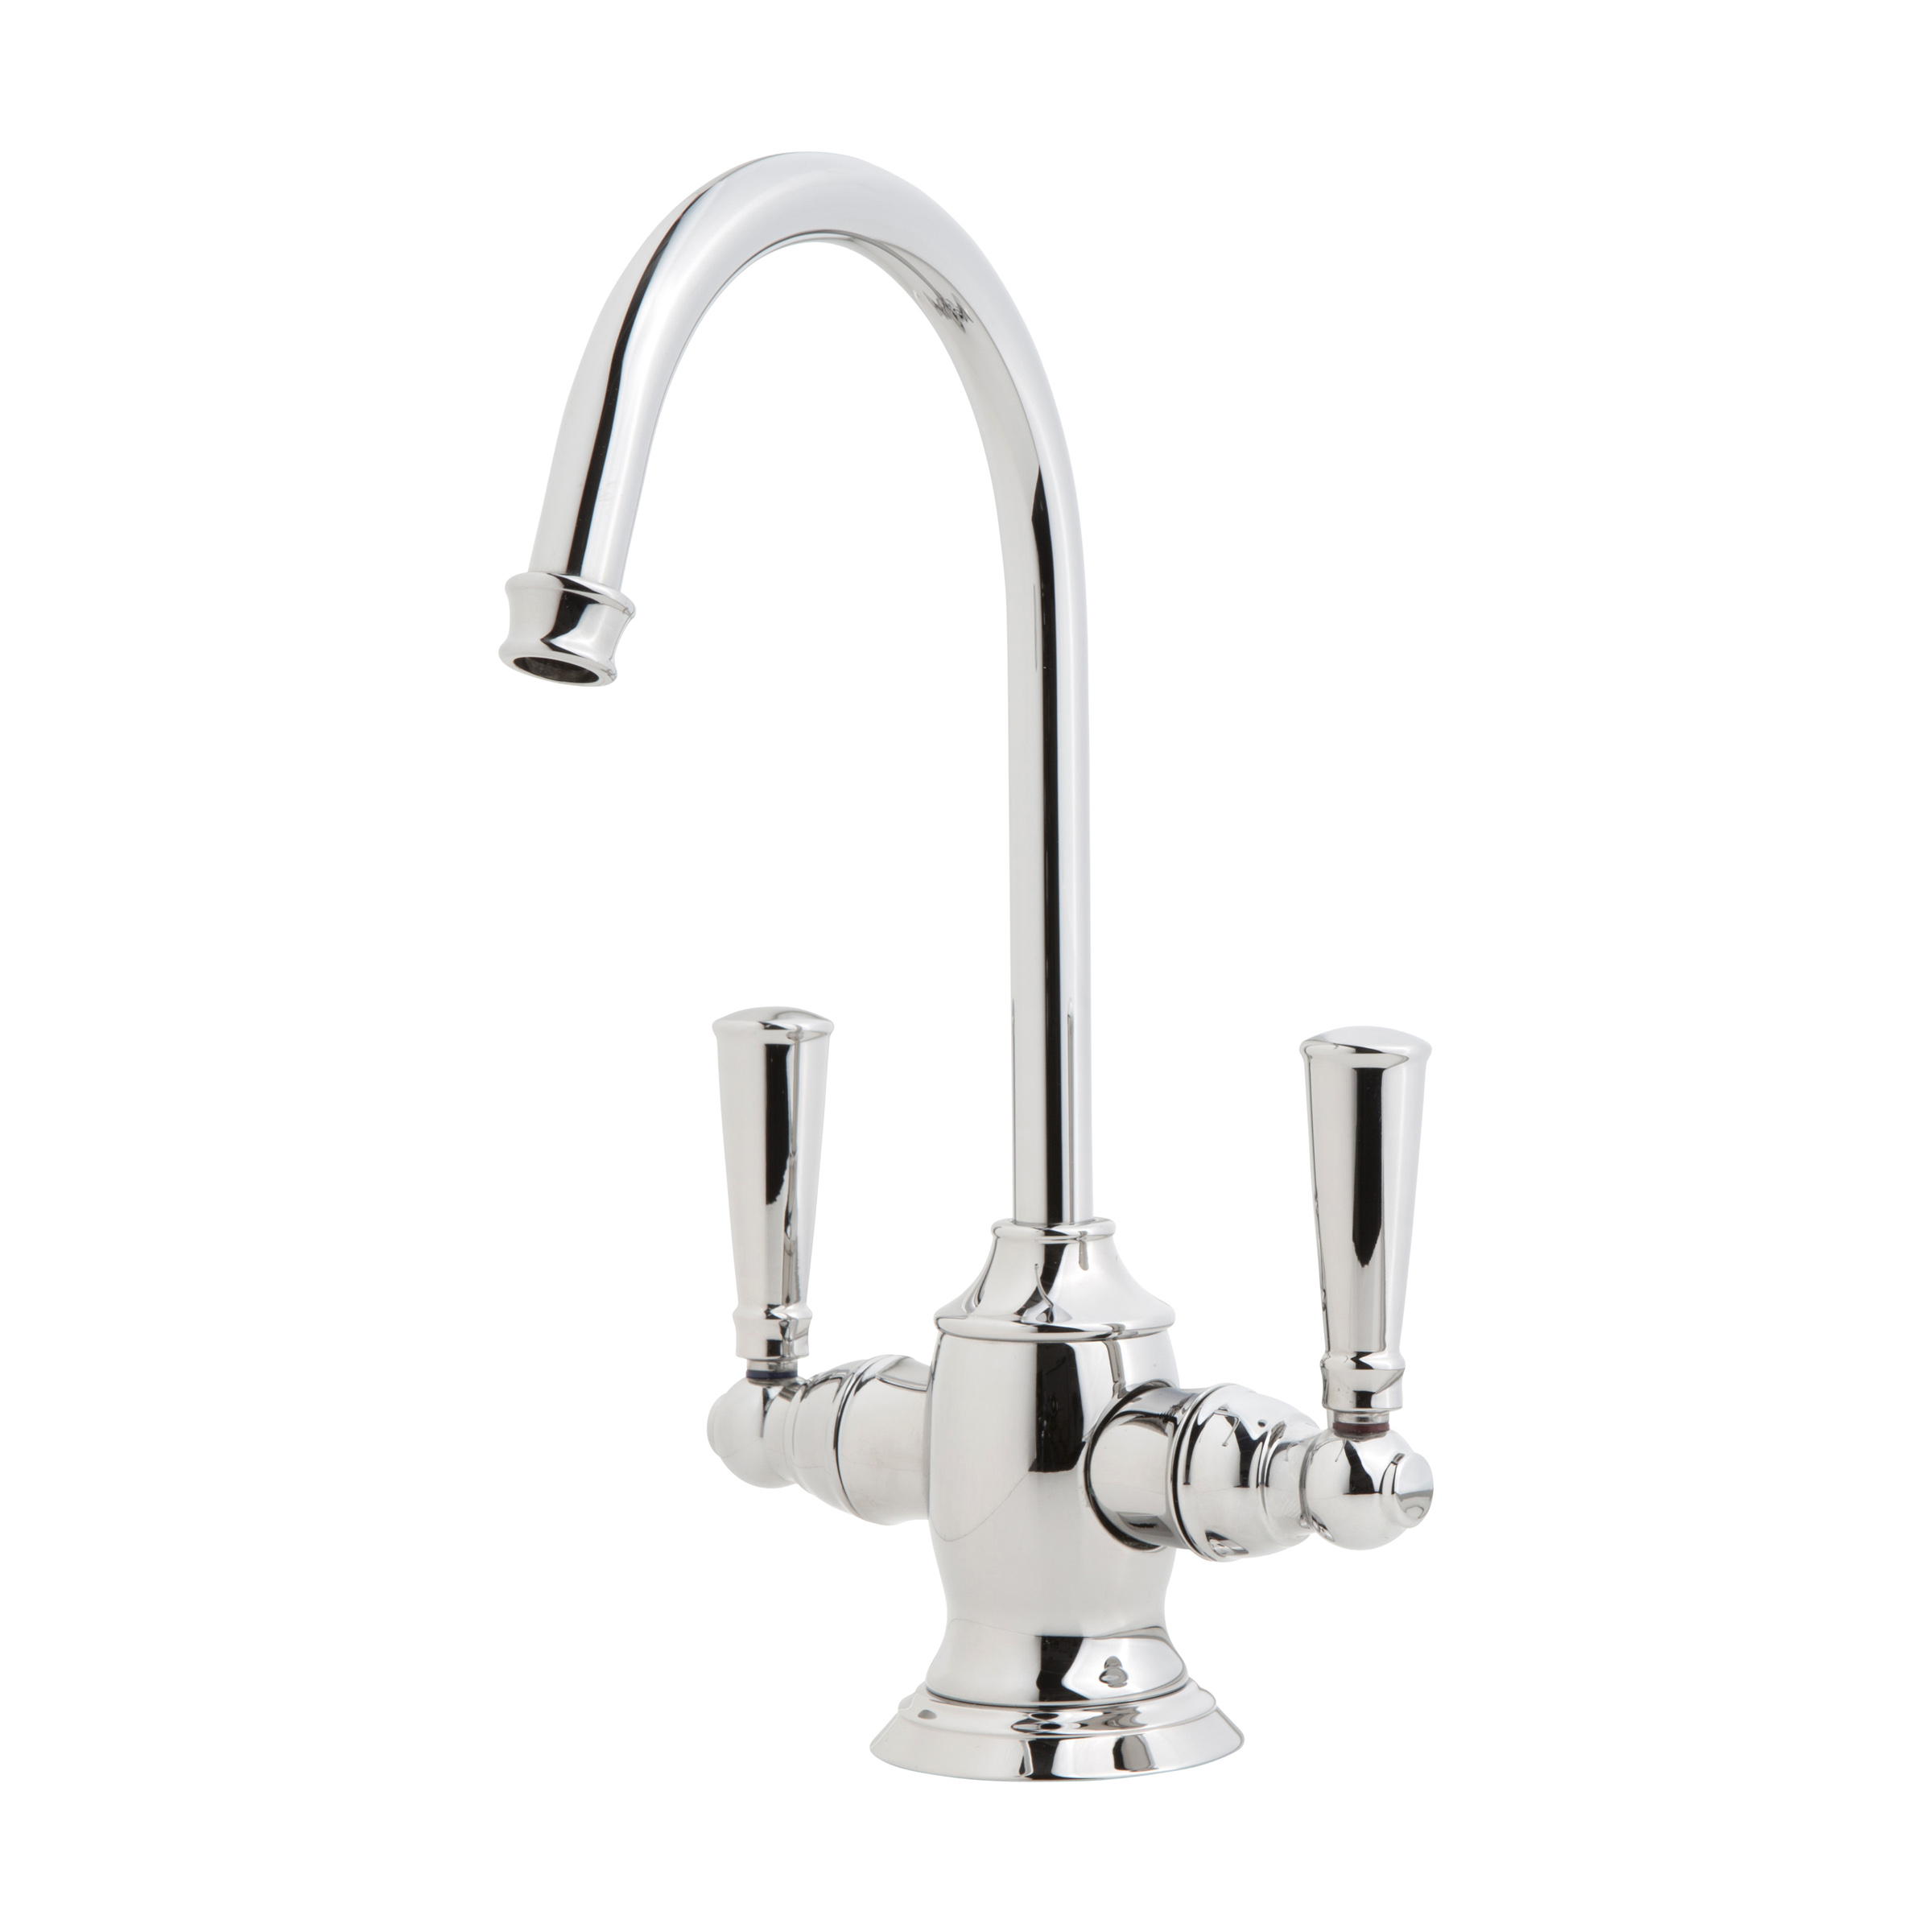 Product ID 2470 5603Newport Brass 2470 5603 Jacobean 2470 5603 Hot and Cold  WaterHot And Cold Water Filter Faucet  Hot and Cold Drinking Water  . Stainless Steel Water Filter Faucet. Home Design Ideas